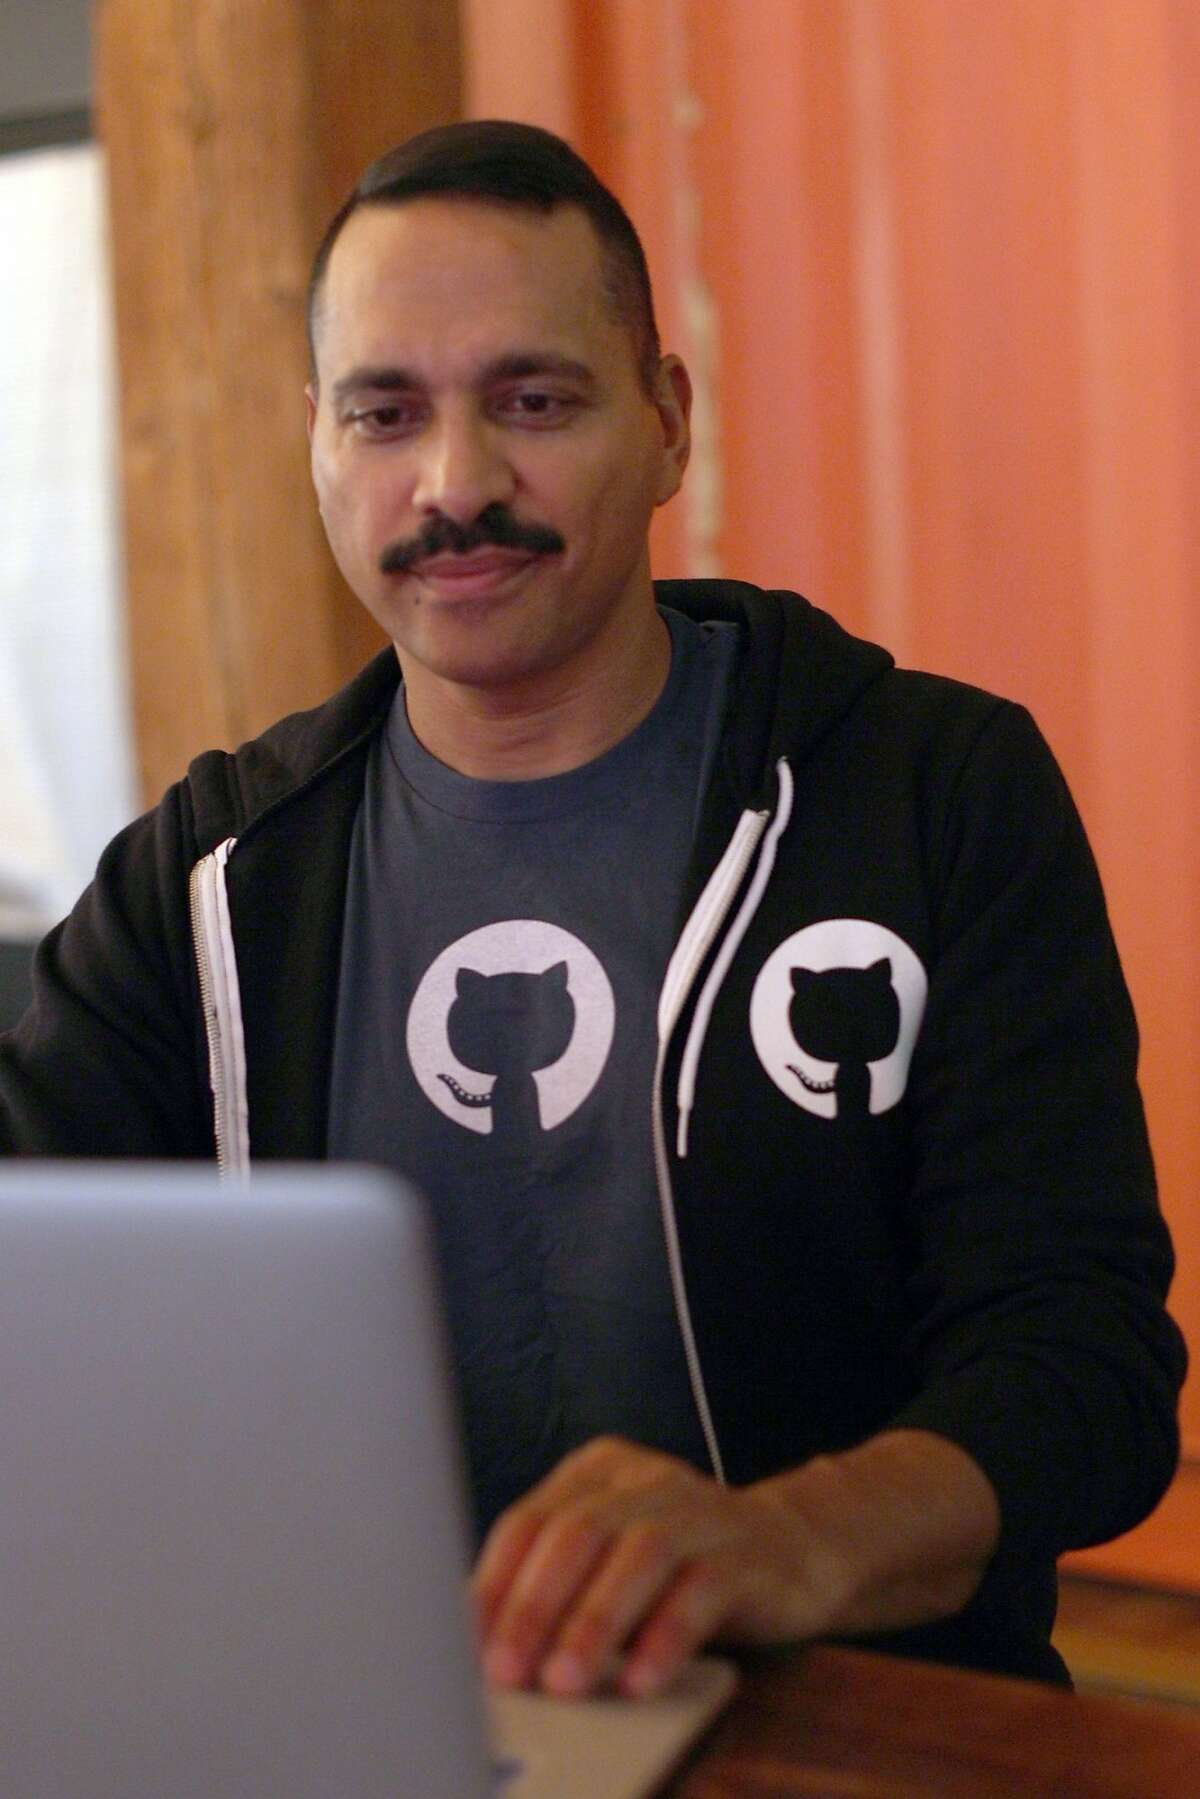 Utilizing the training he received from Jewish Vocational Services in Salesforce Administrator software, Rajat Dutta is working a contract position at GitHub on December 3, 2015.